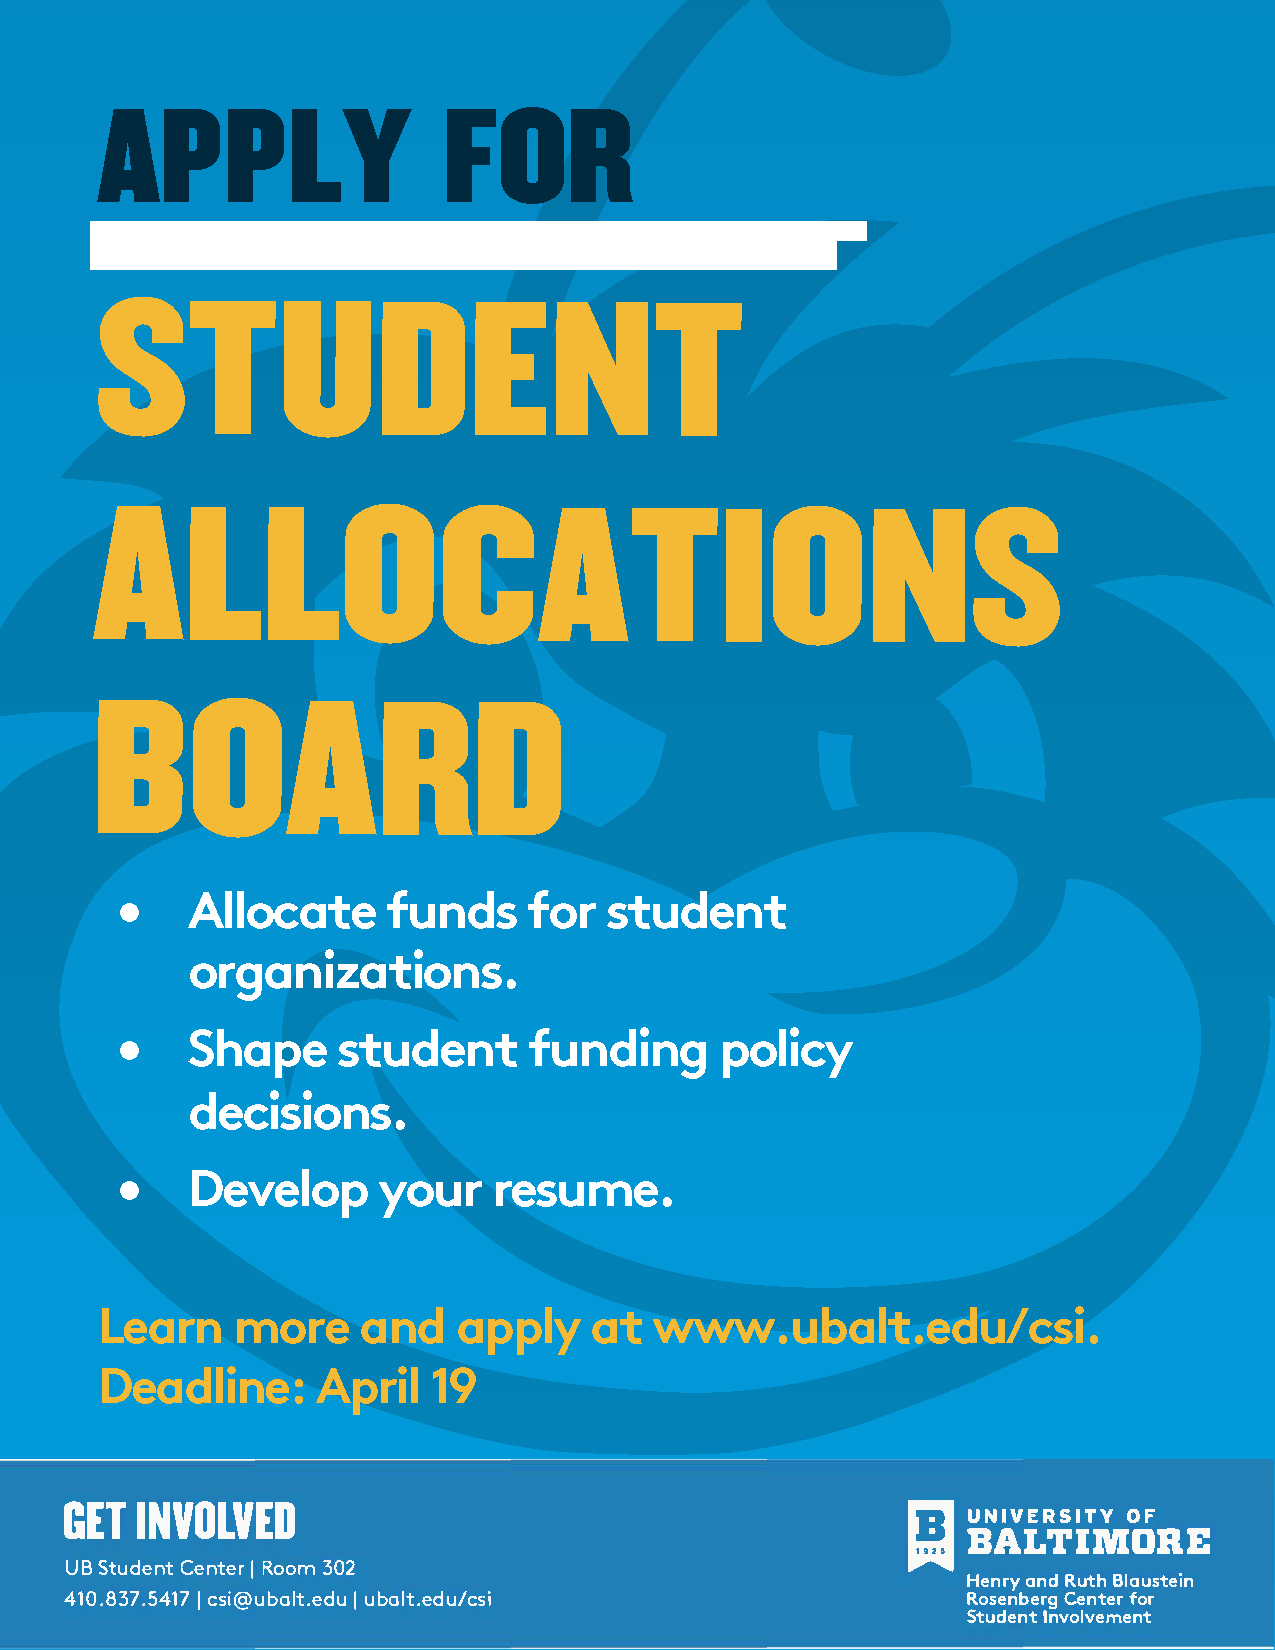 Deadline to apply for the Student Allocations Board